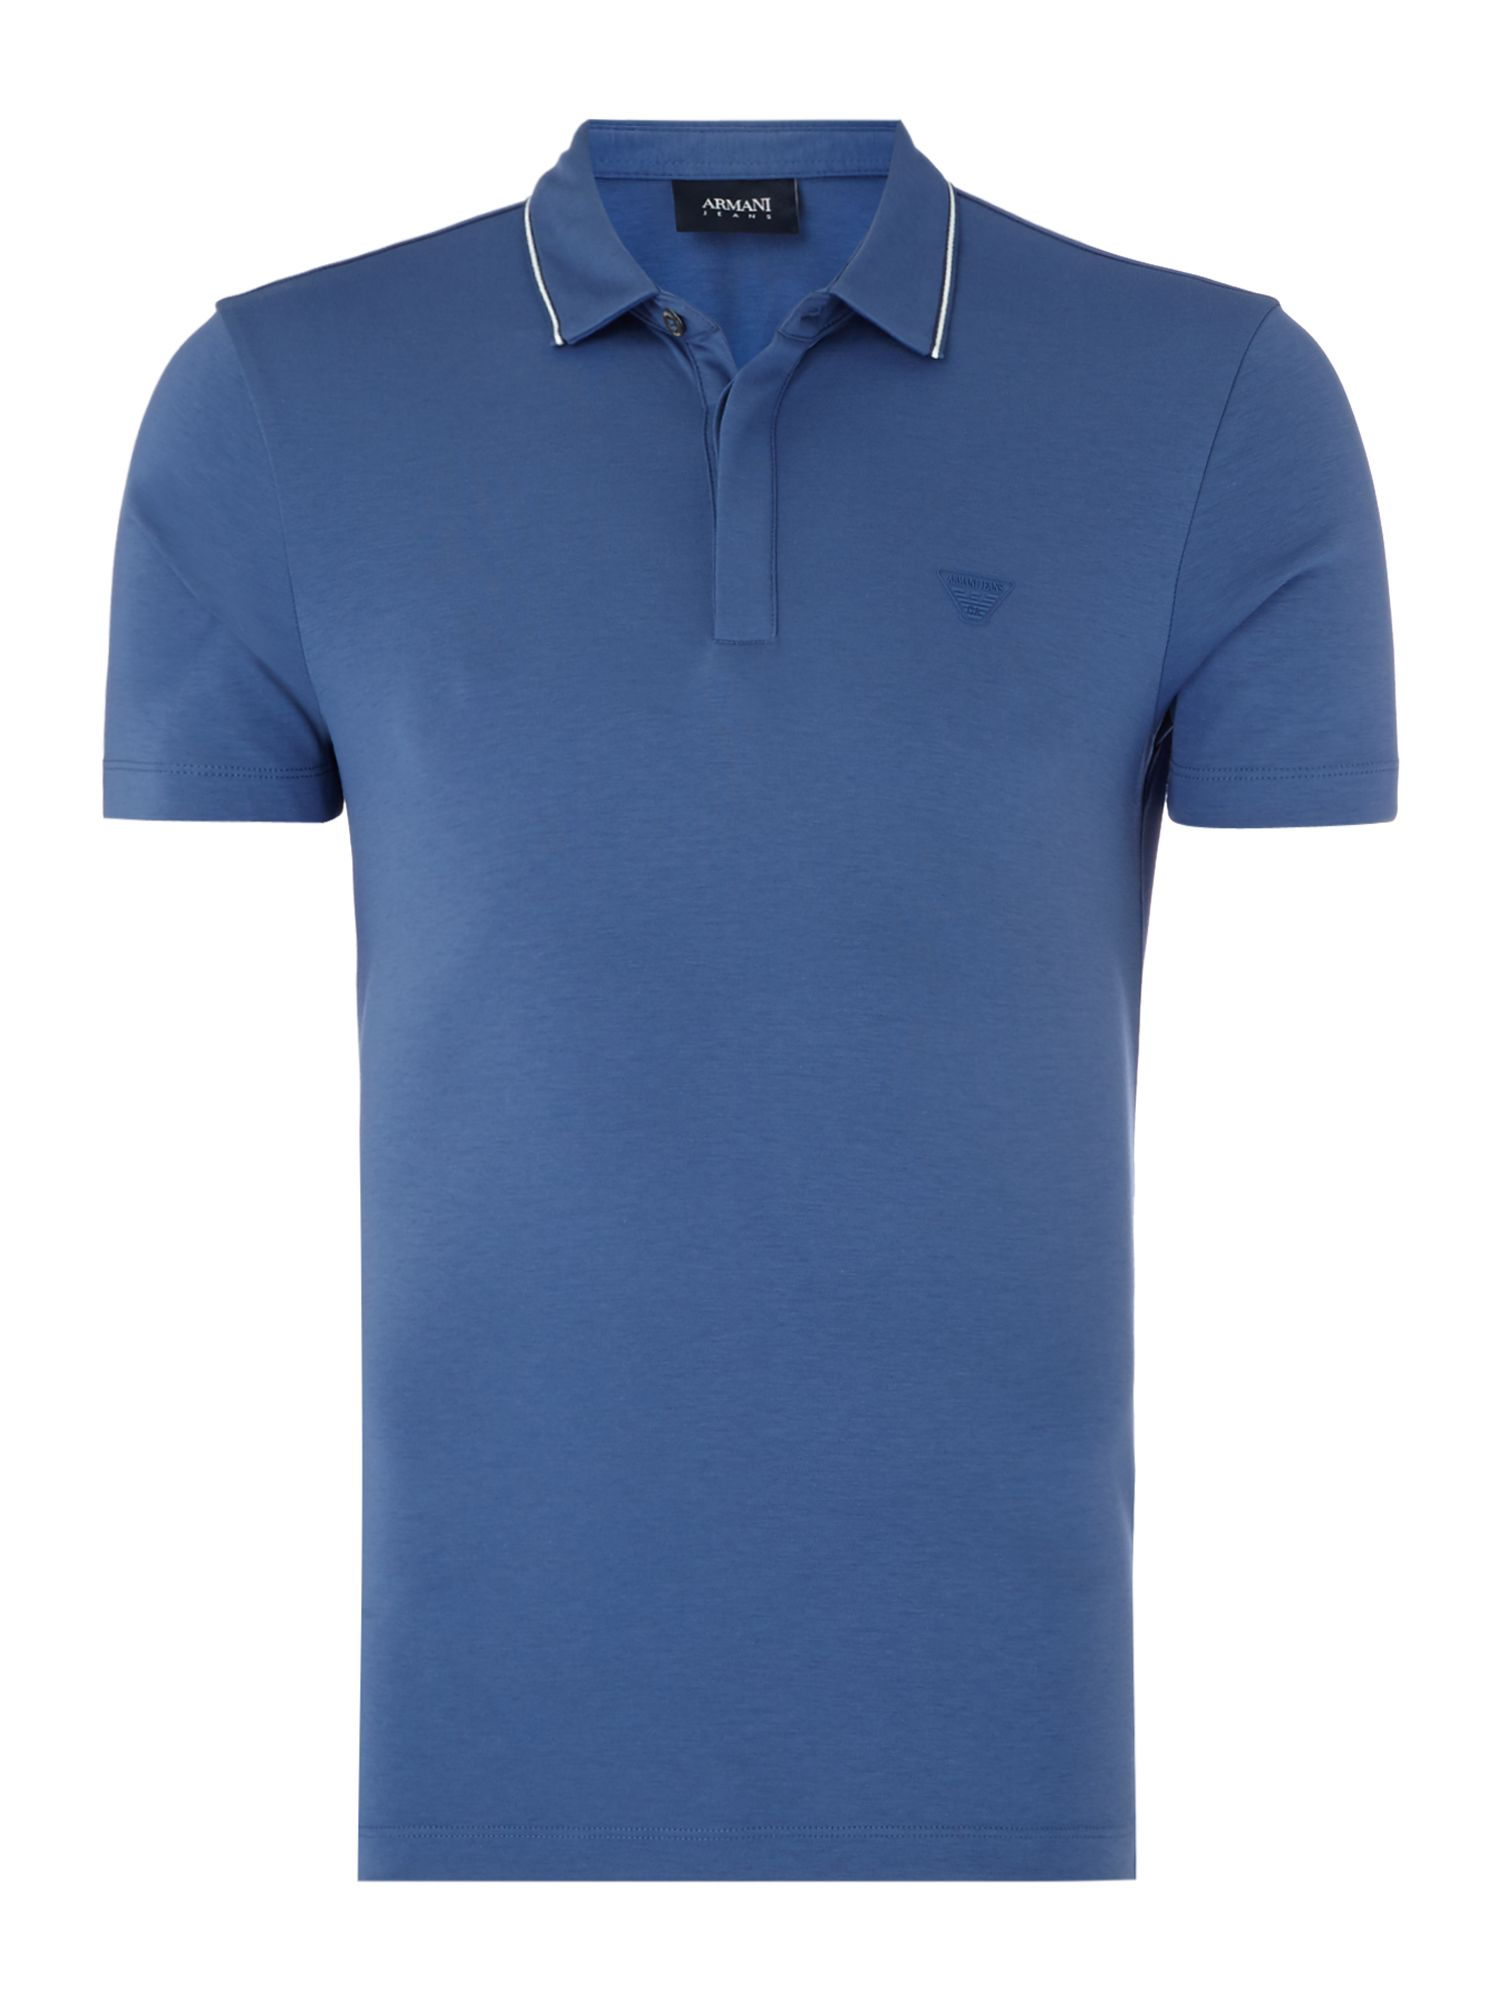 Men's Armani Jeans Mercerised cotton slim fit polo shirt, Blue